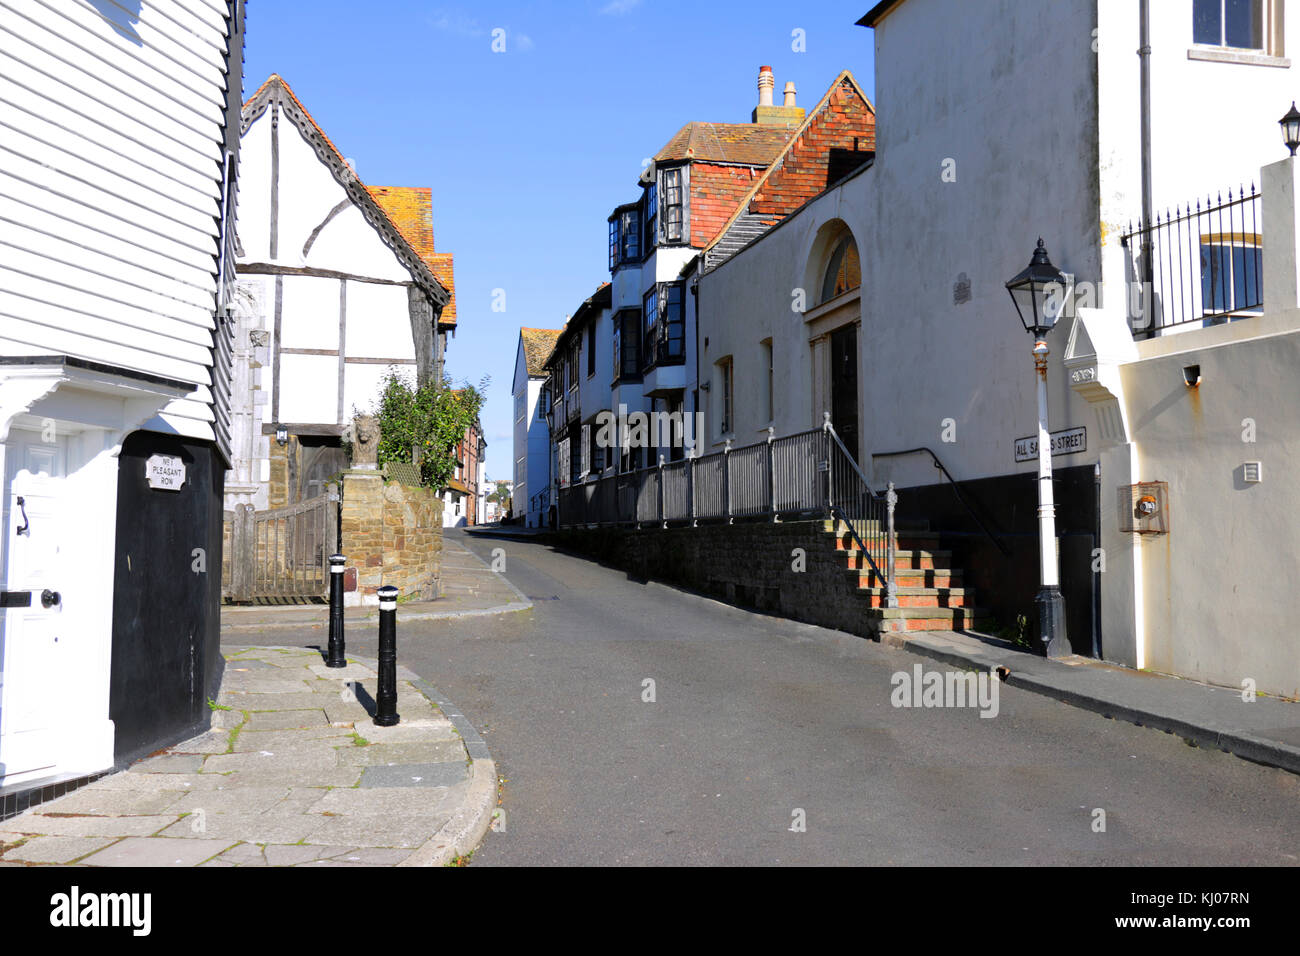 All Saints Street in the Old Town of Hastings - Stock Image